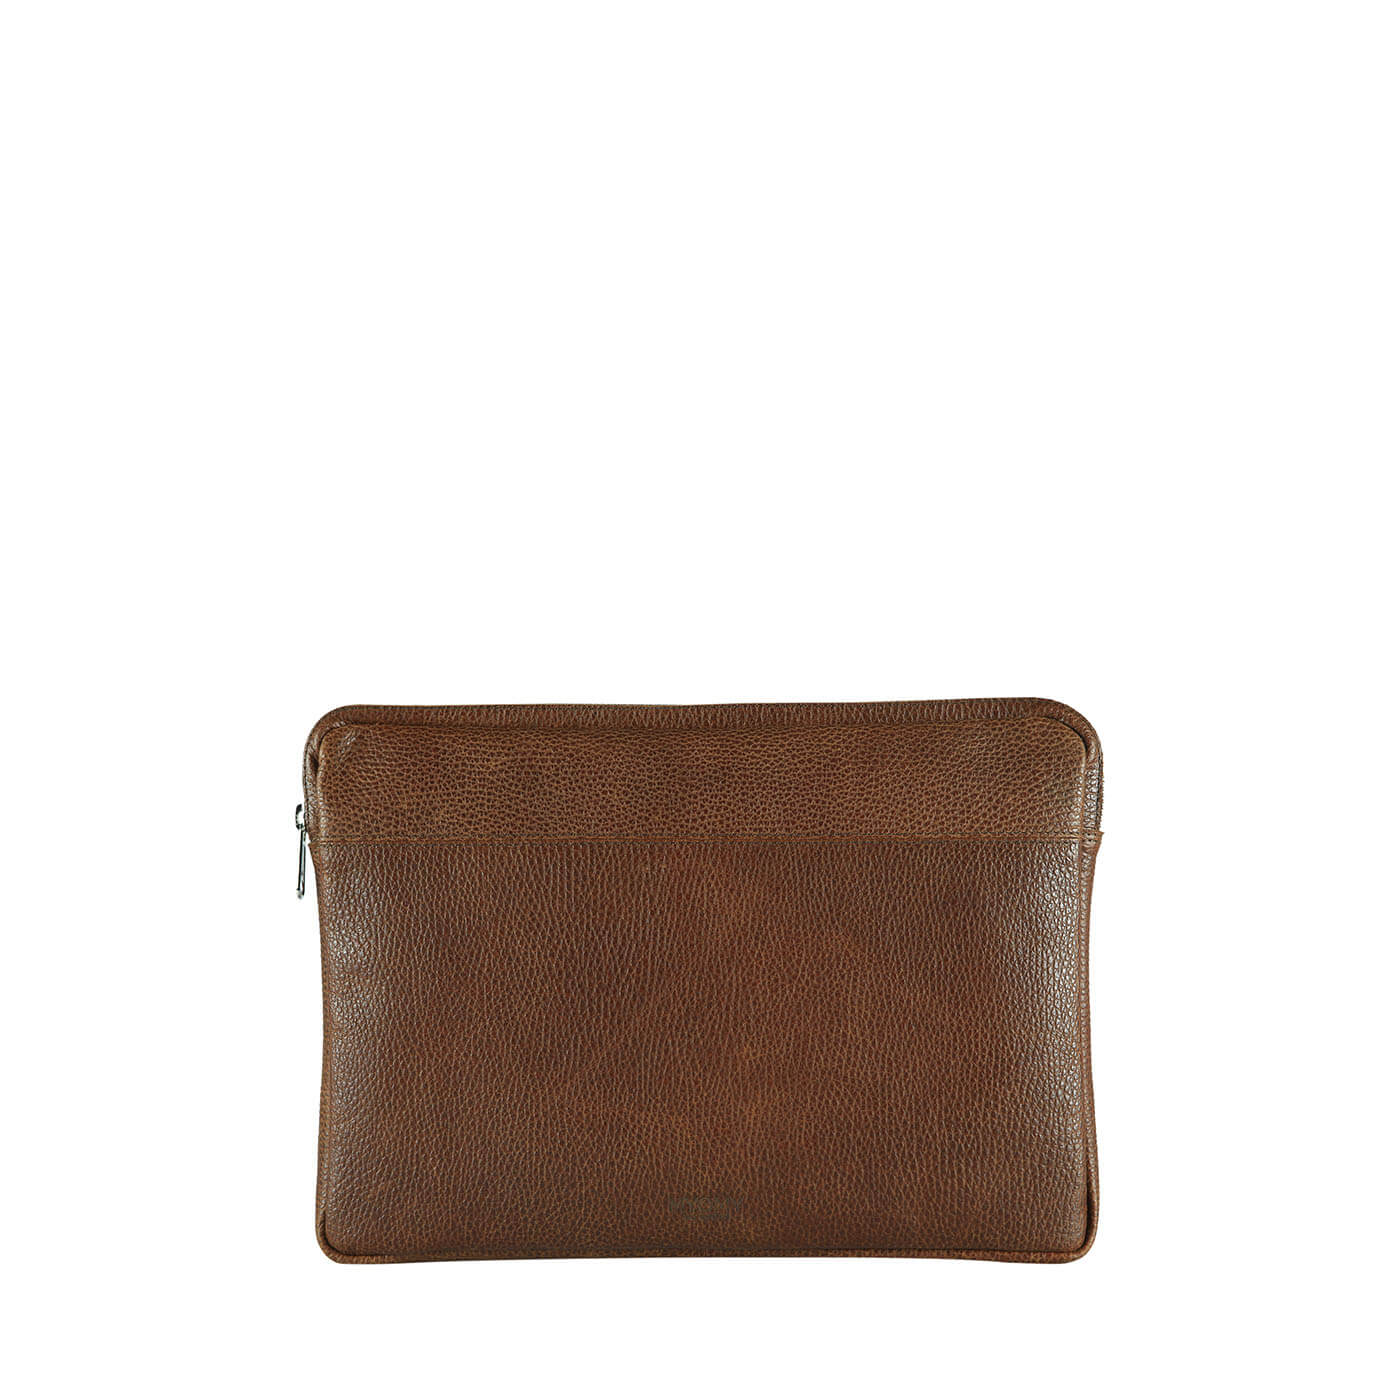 MY PHILIP BAG Laptop Sleeve 13 inch - rambler brandy